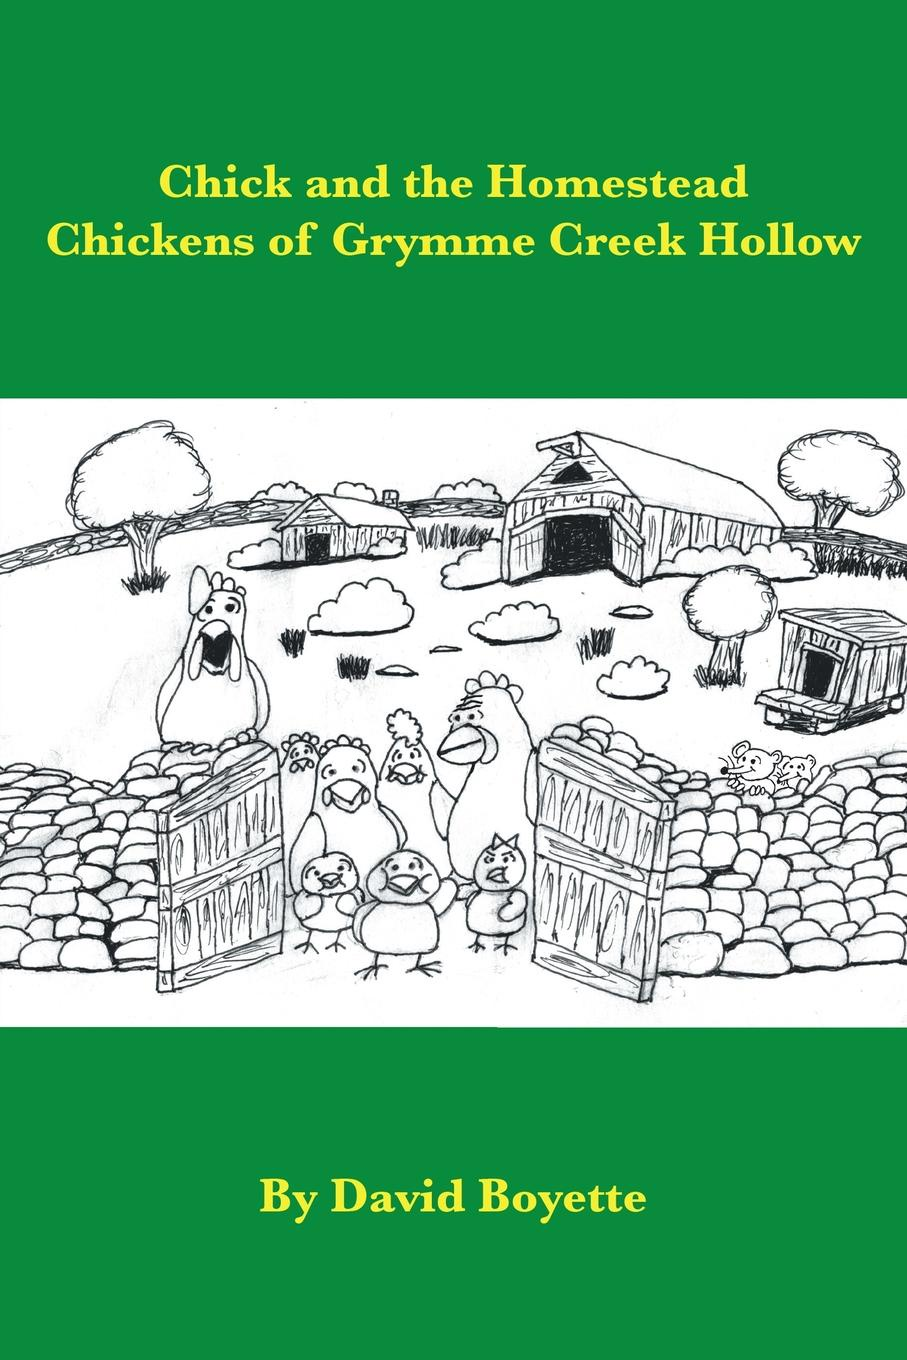 David Boyette Chick and the Homestead Chickens of Grymme Creek Hollow deep hollow creek